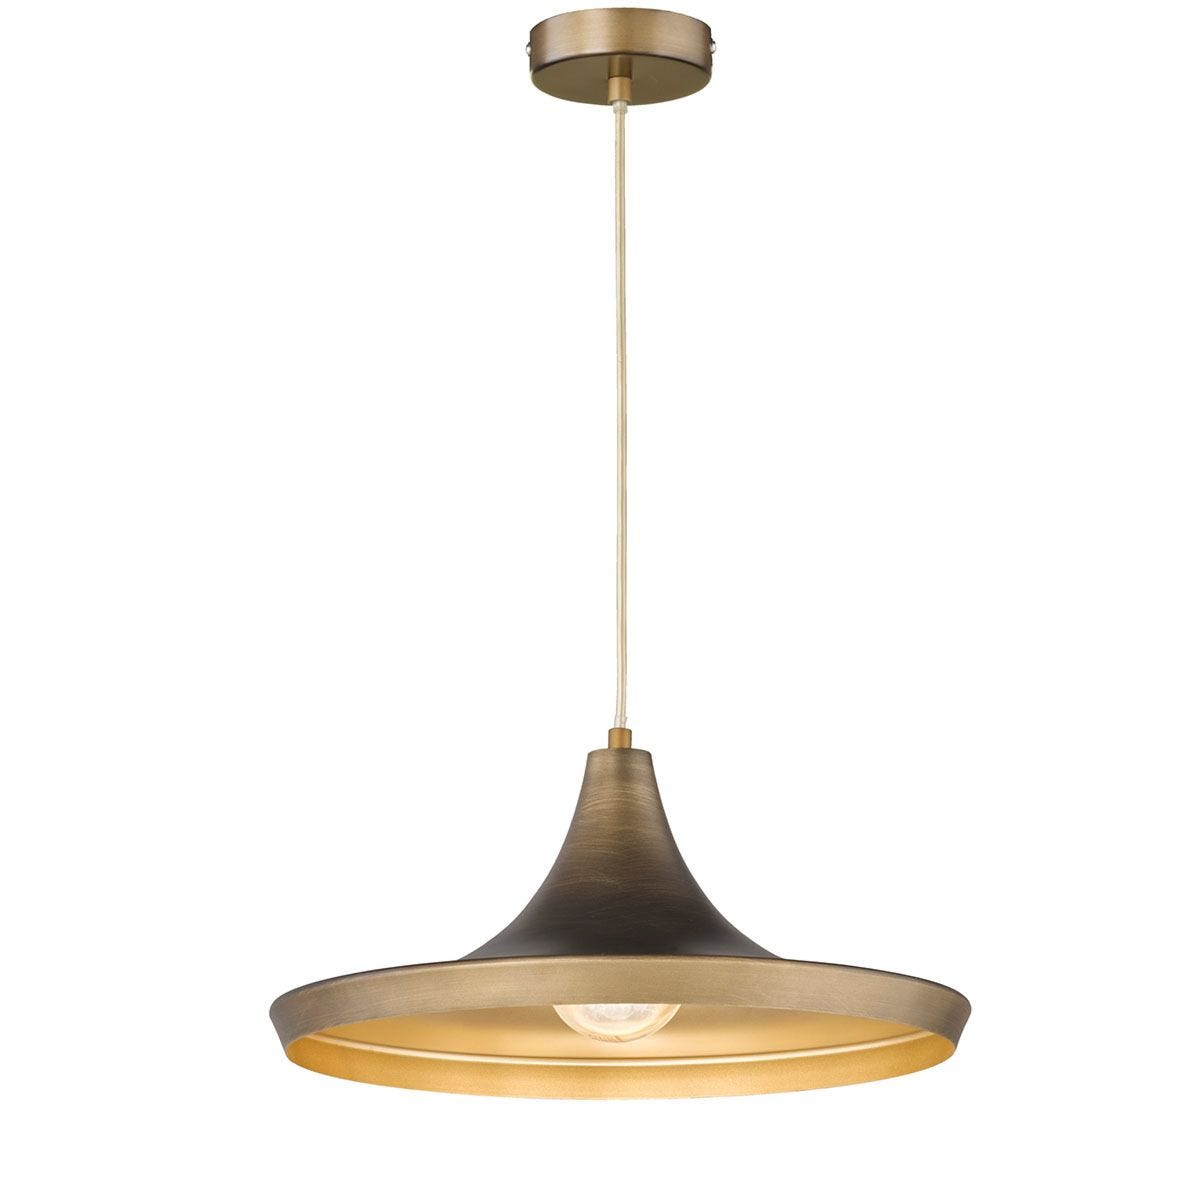 Wofi Erin Pendant Ceiling Light - Brown